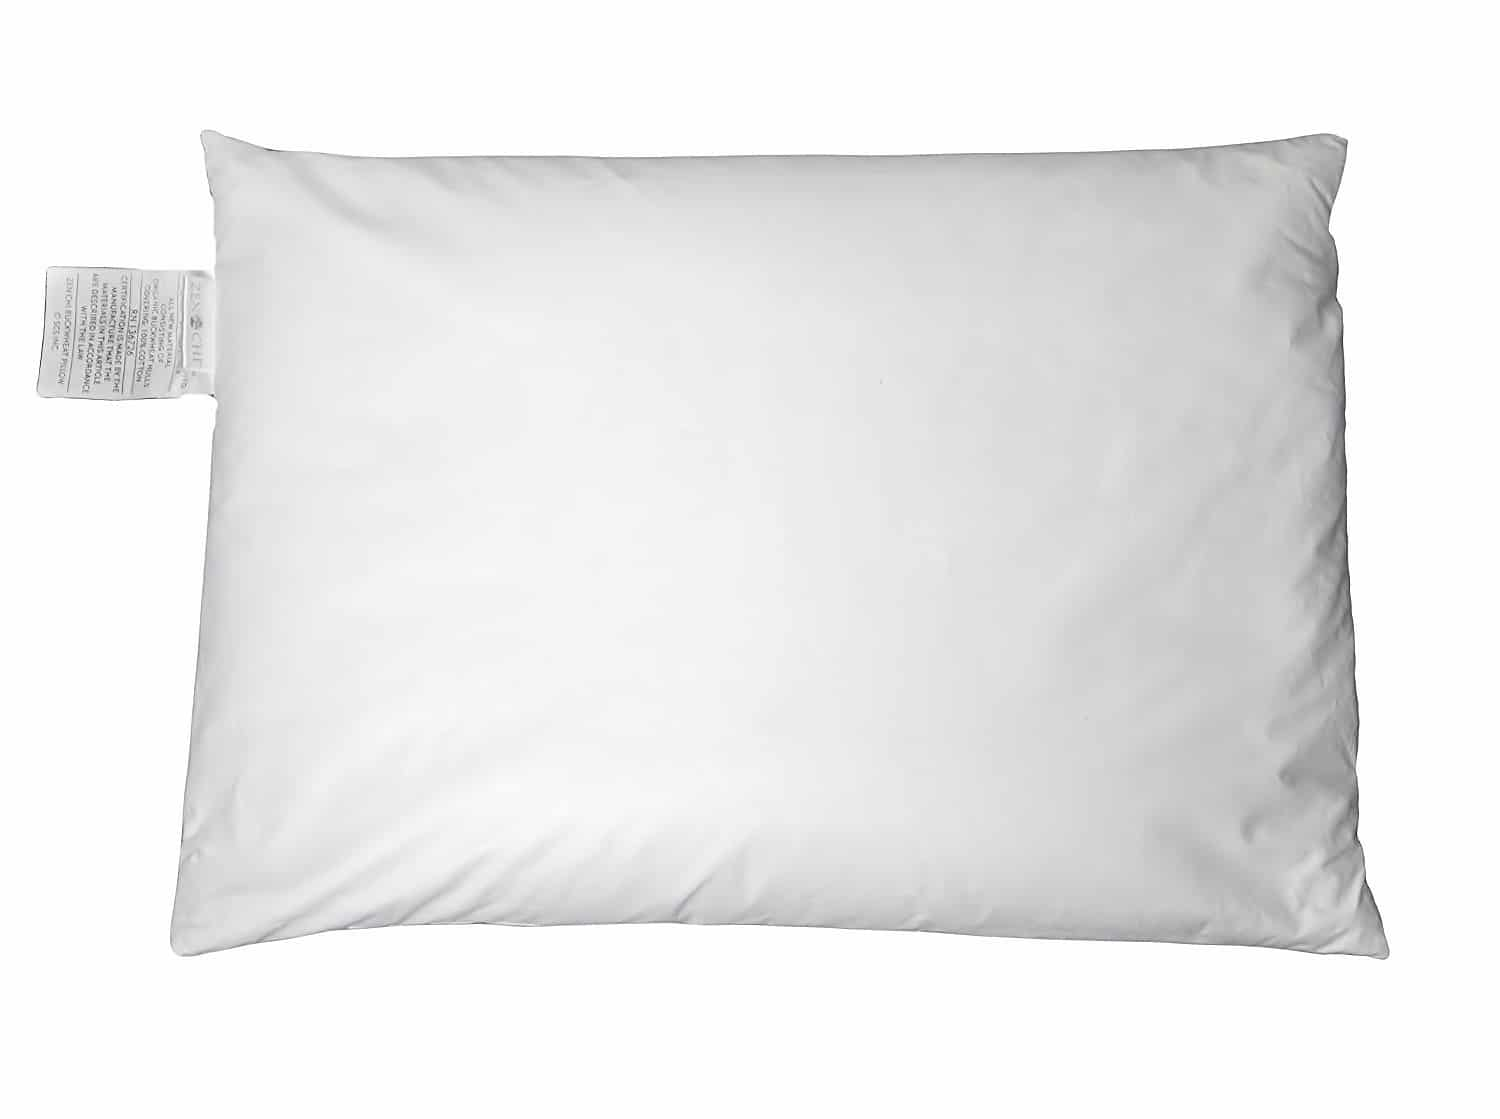 Zen Chi Buckwheat Organic Natural Cooling Pillow